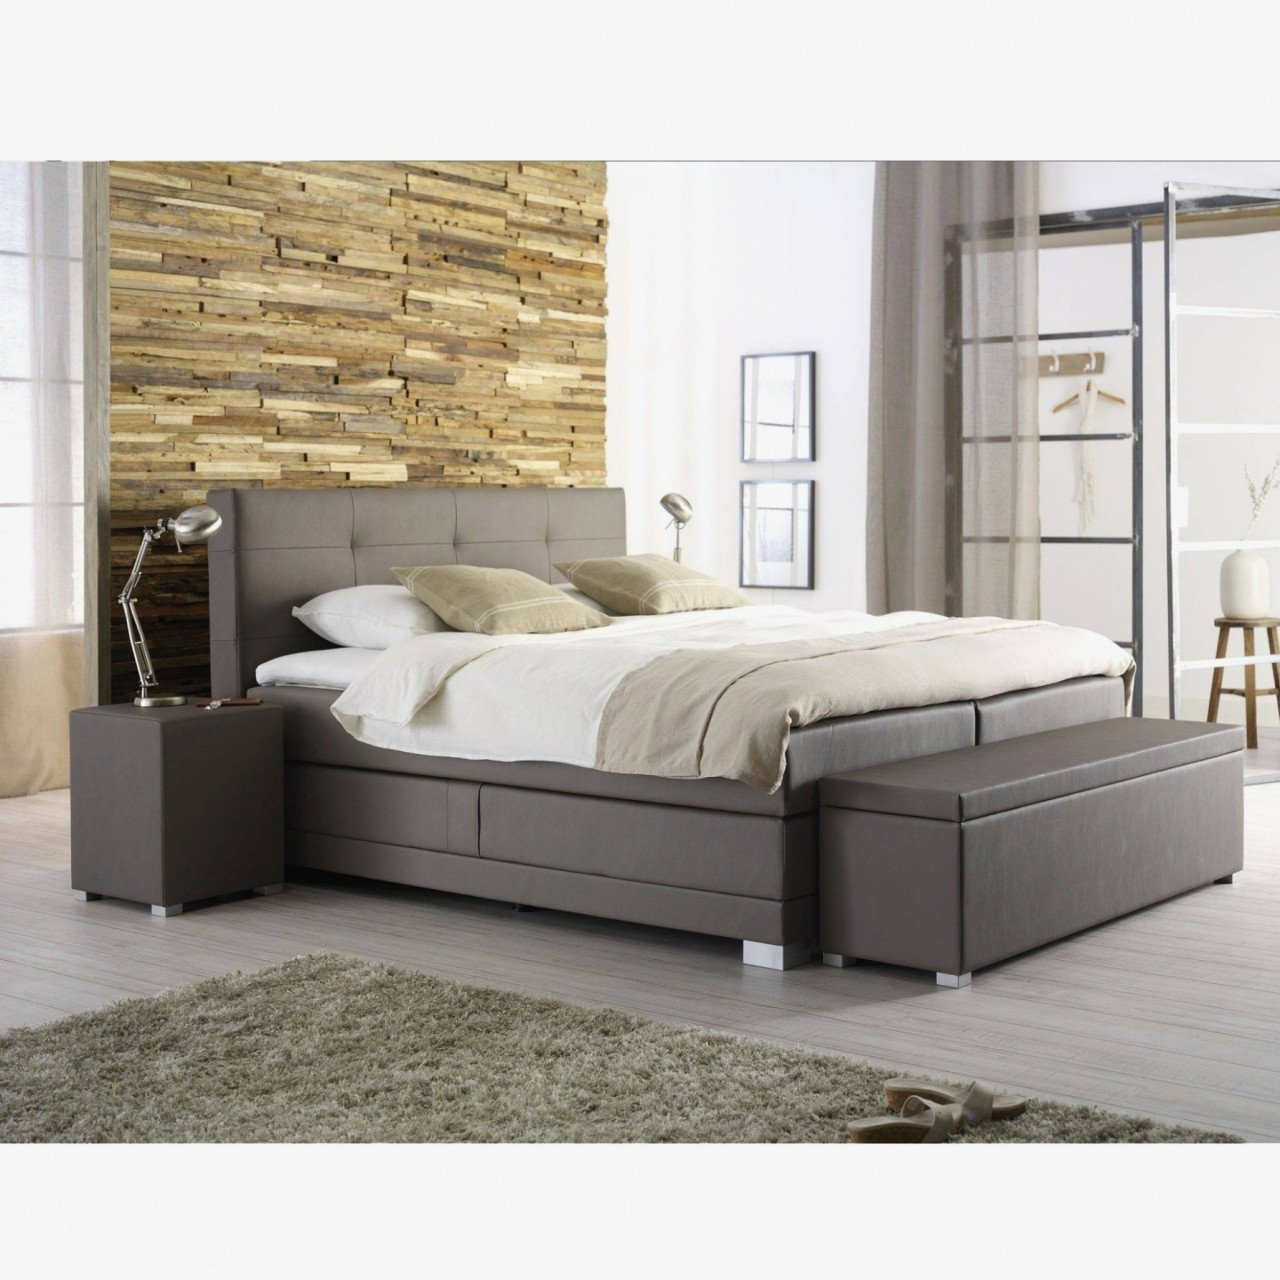 Bedroom Furniture Set King Best Of Bed with Drawers Under — Procura Home Blog